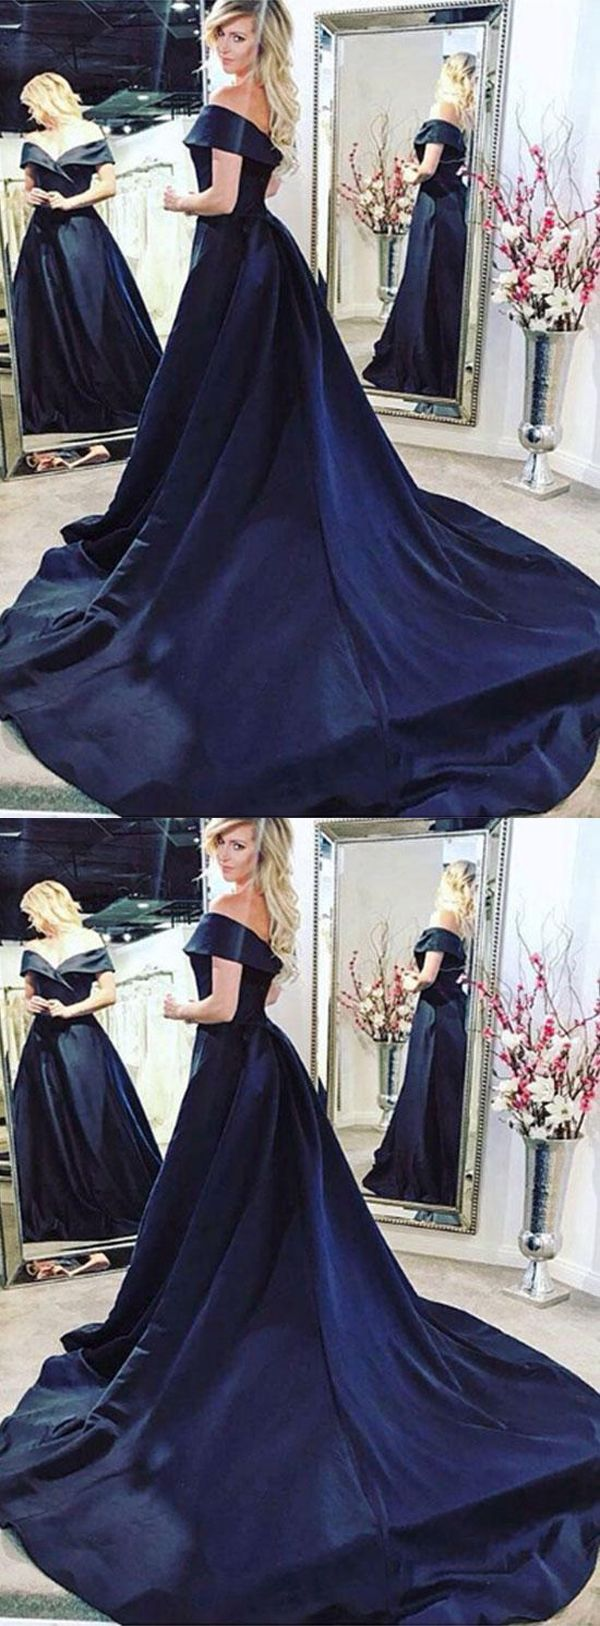 A-Line Off-The-Shoulder Navy Blue Sweep Train Prom/Evening Dress